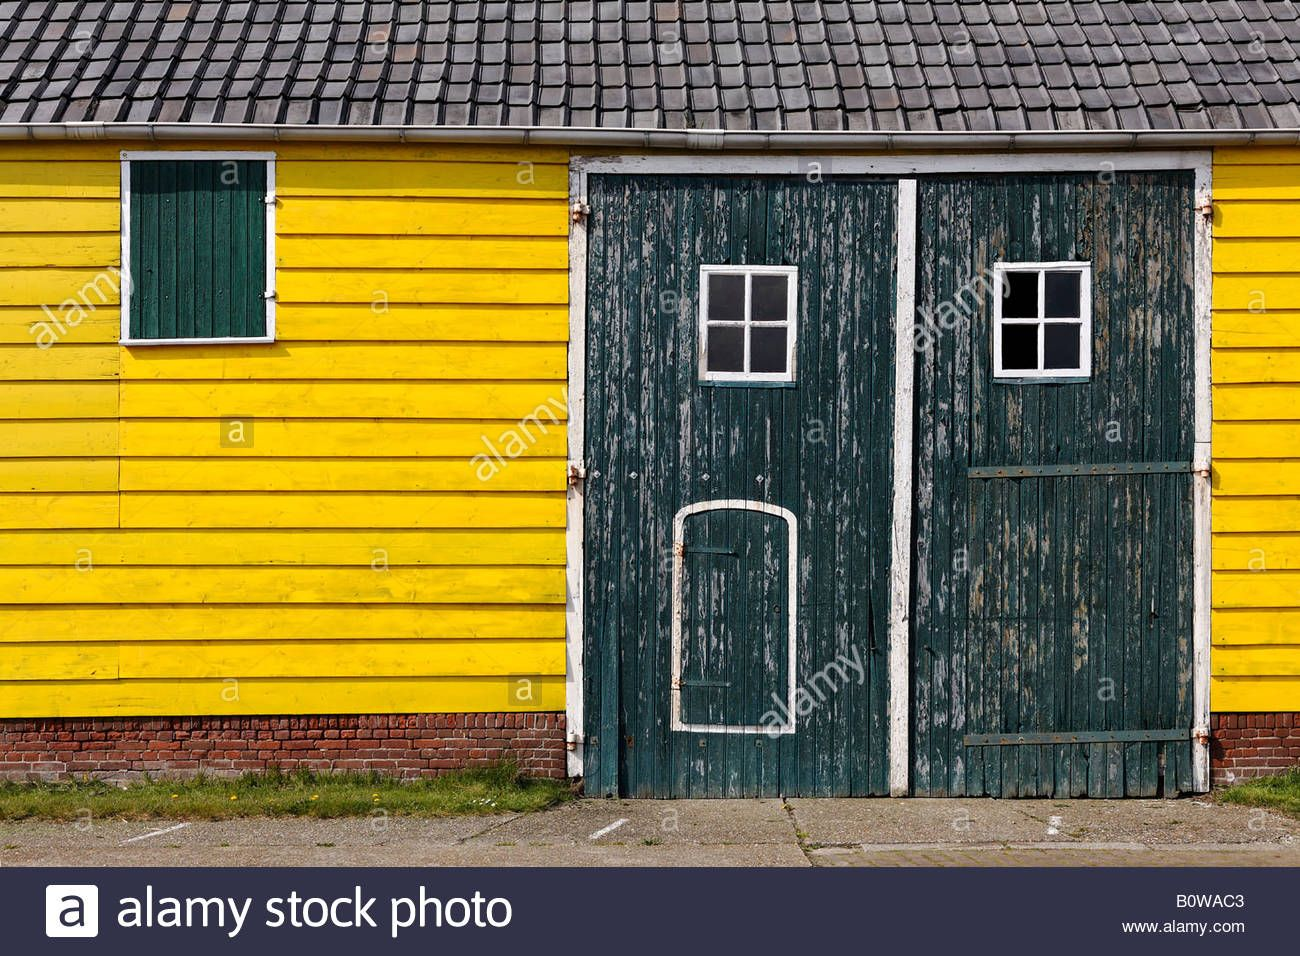 Download this stock image: Bright yellow painted old shed near ...